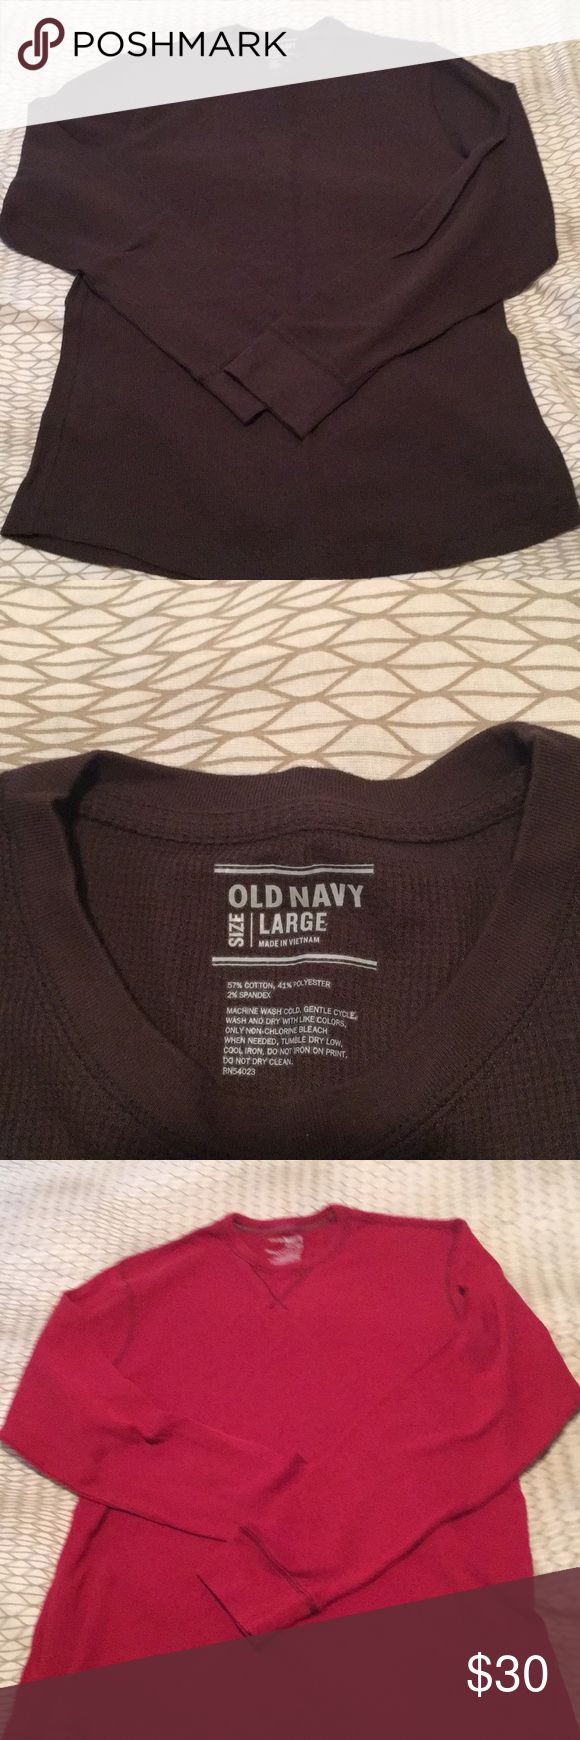 Men's Thermals Brown and red thermal from Old Navy. Both are Men's large. Gray thermal is from Sean Jean. Brand stitched on left breast and extra large in size. All in good condition. Old Navy Shirts